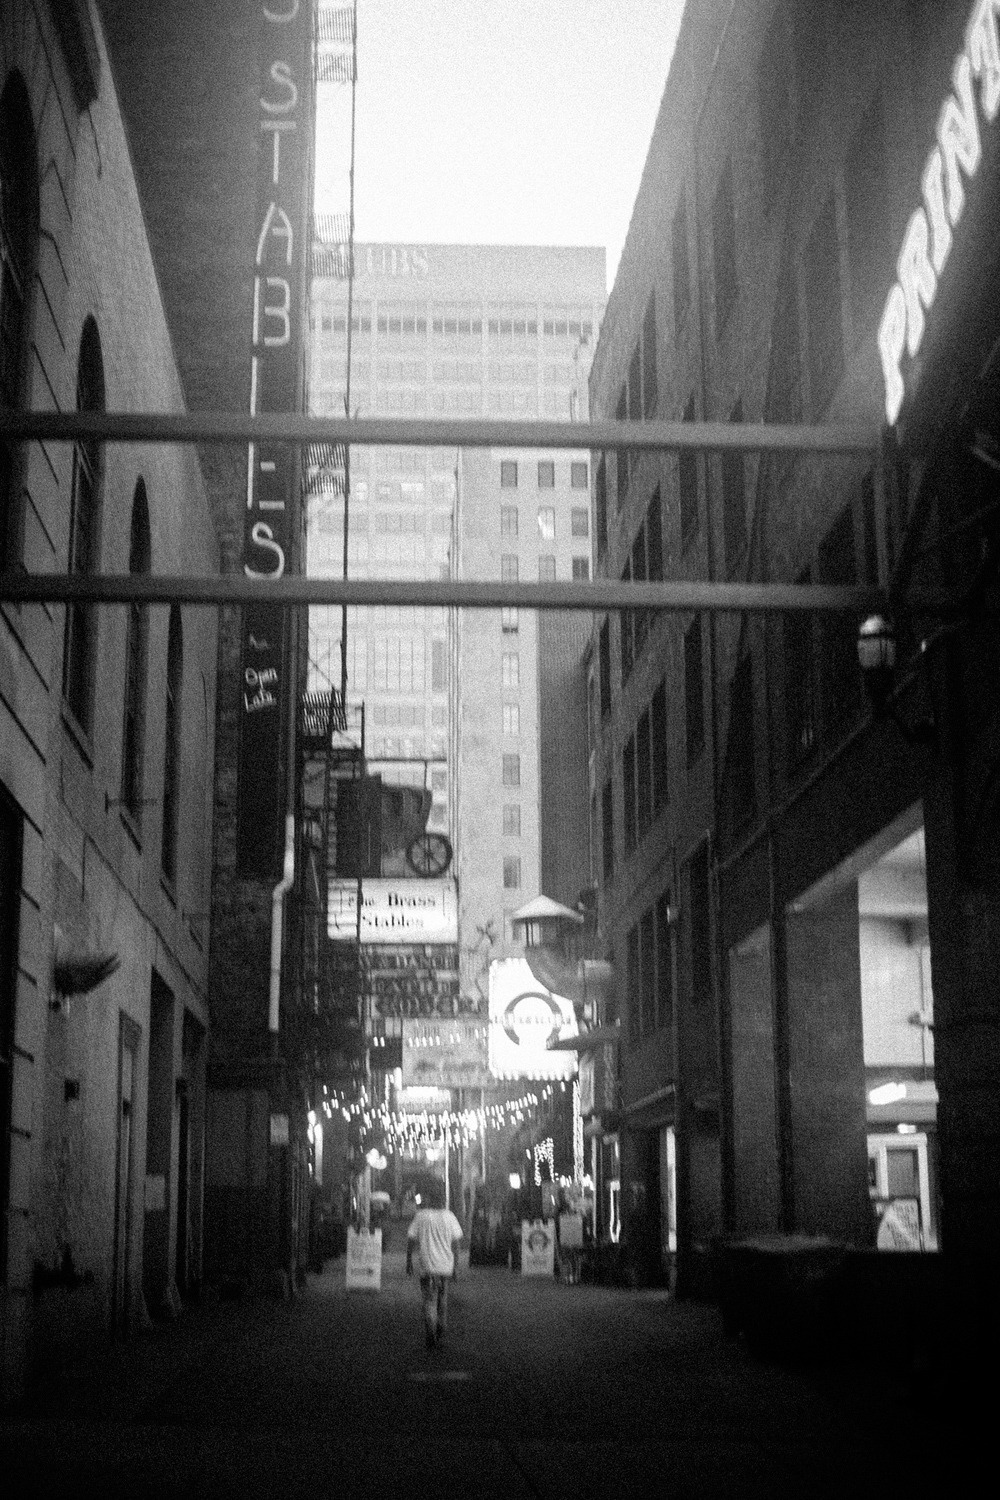 Printer's Alley  Nashville, TN   June 2015